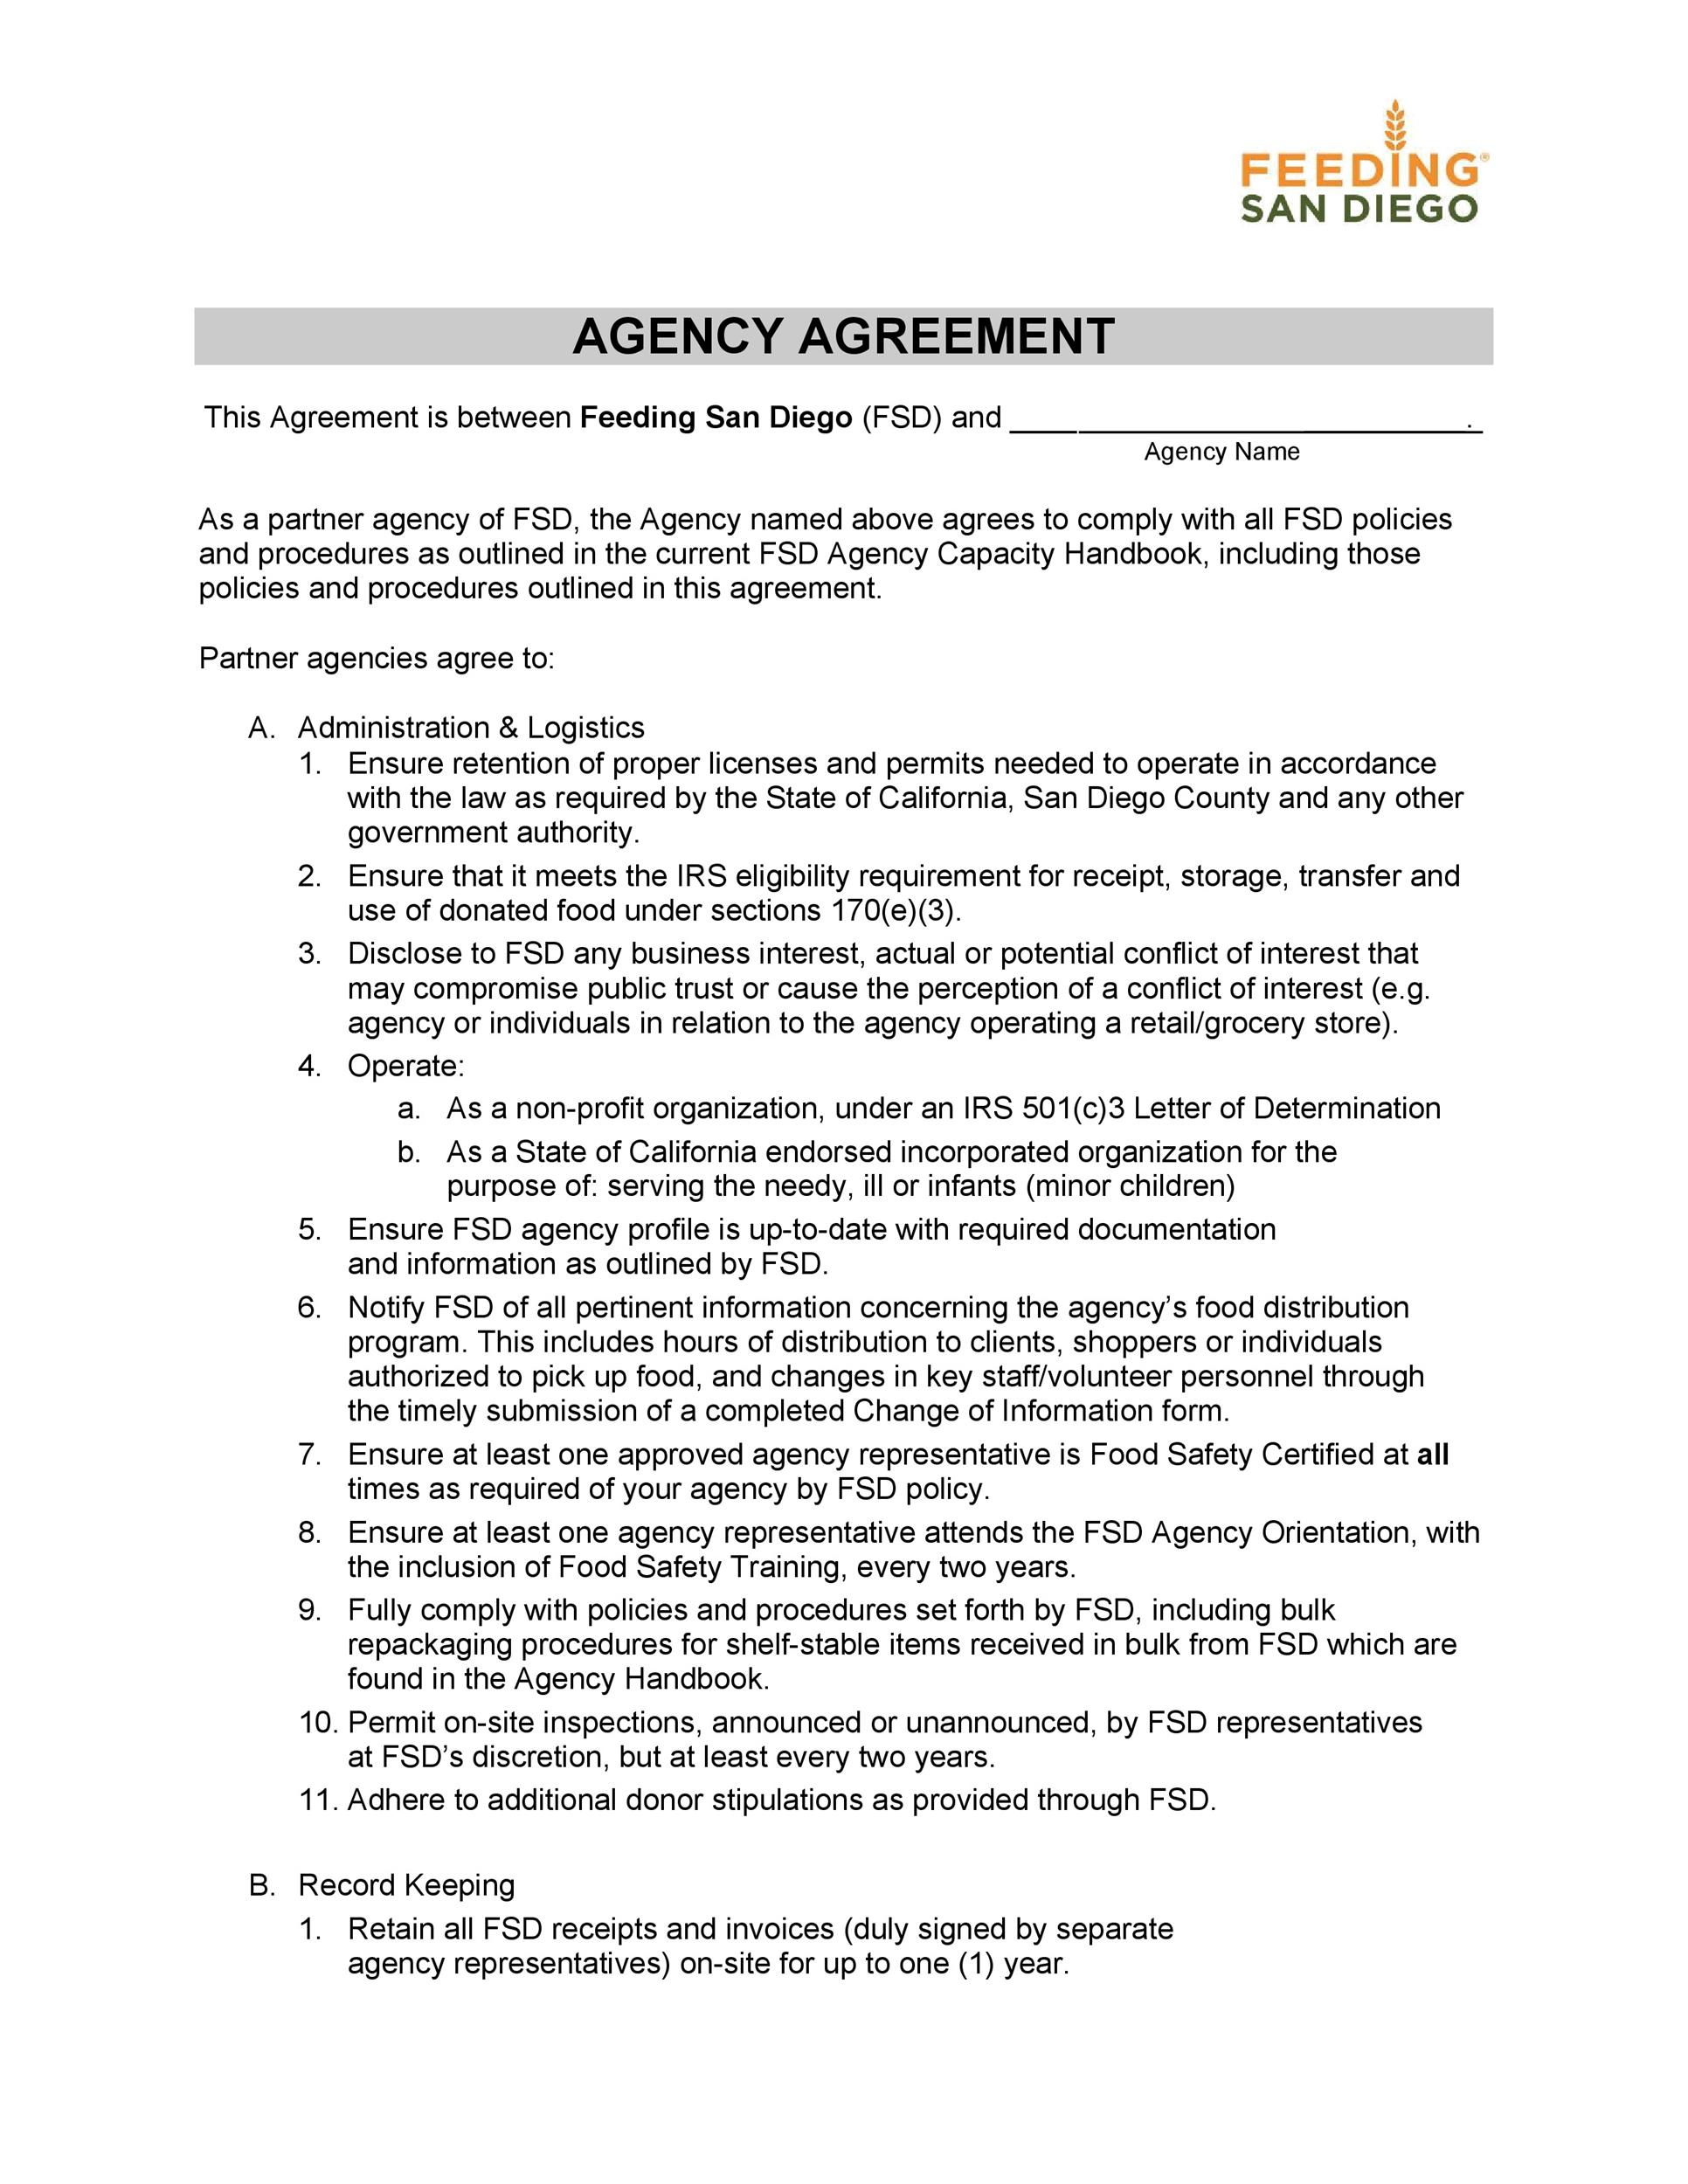 Free agency agreement 41